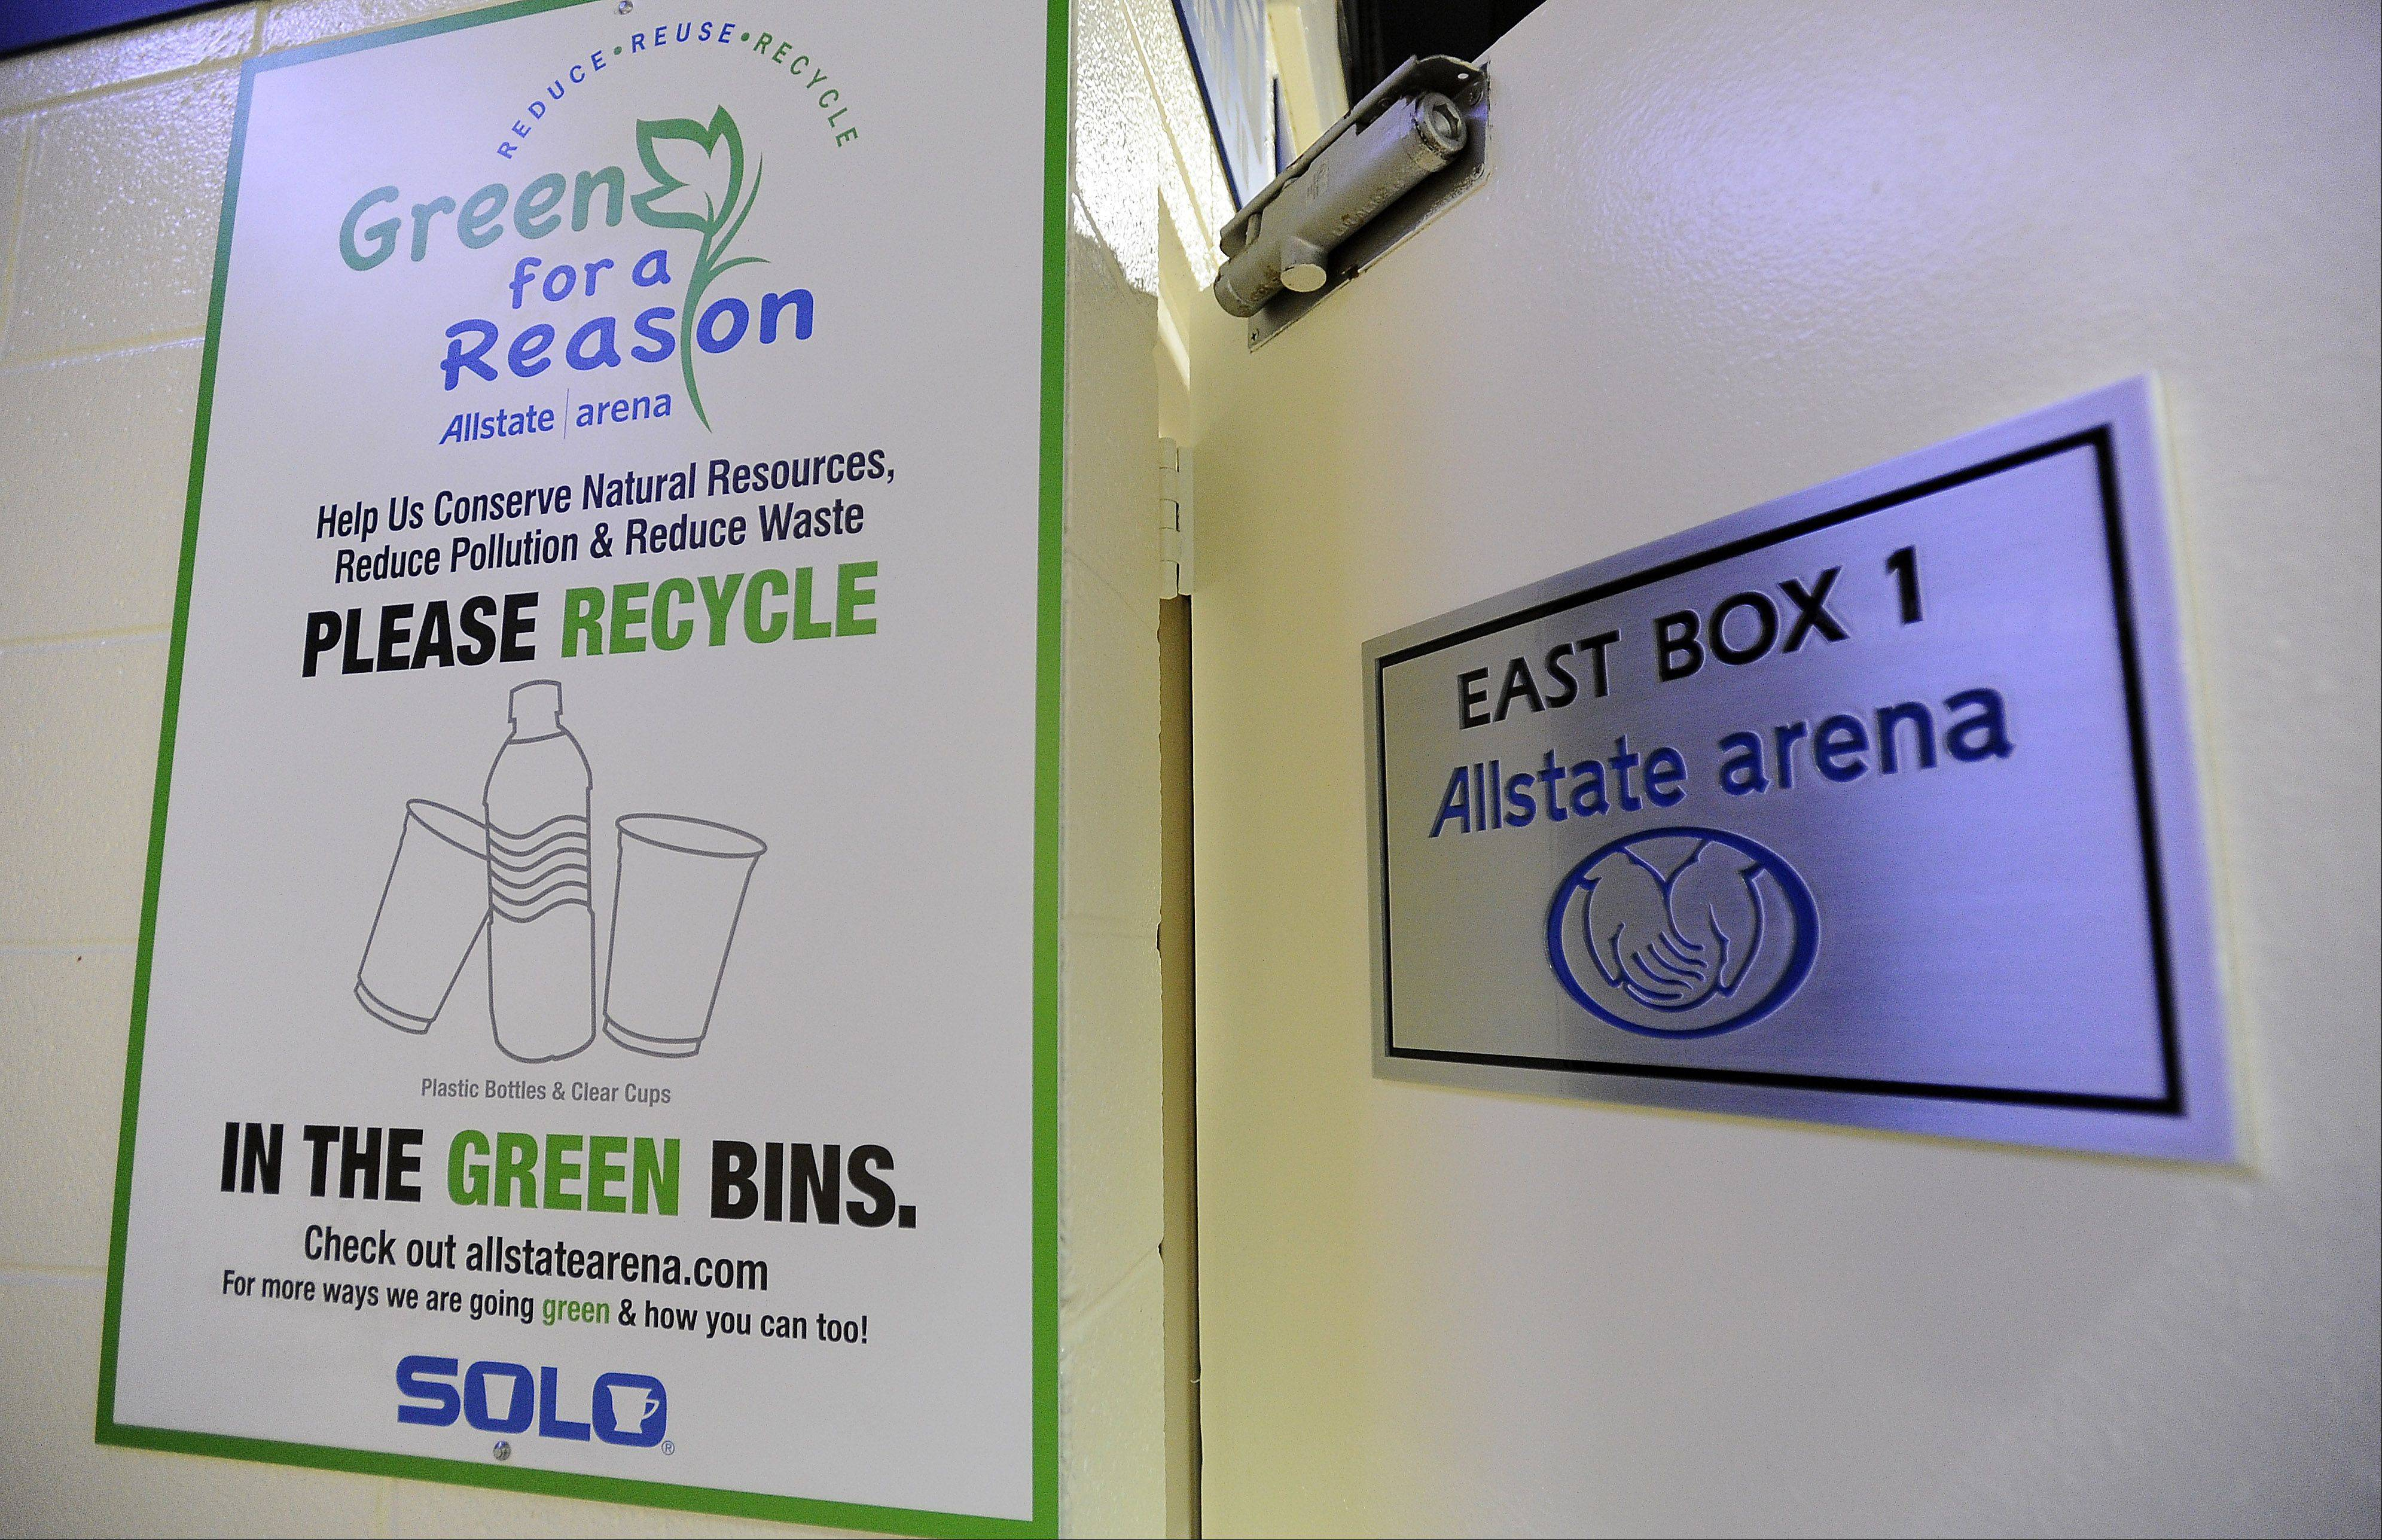 Environmental signs like this one greet visitors to the Allstate Arena in Rosemont.